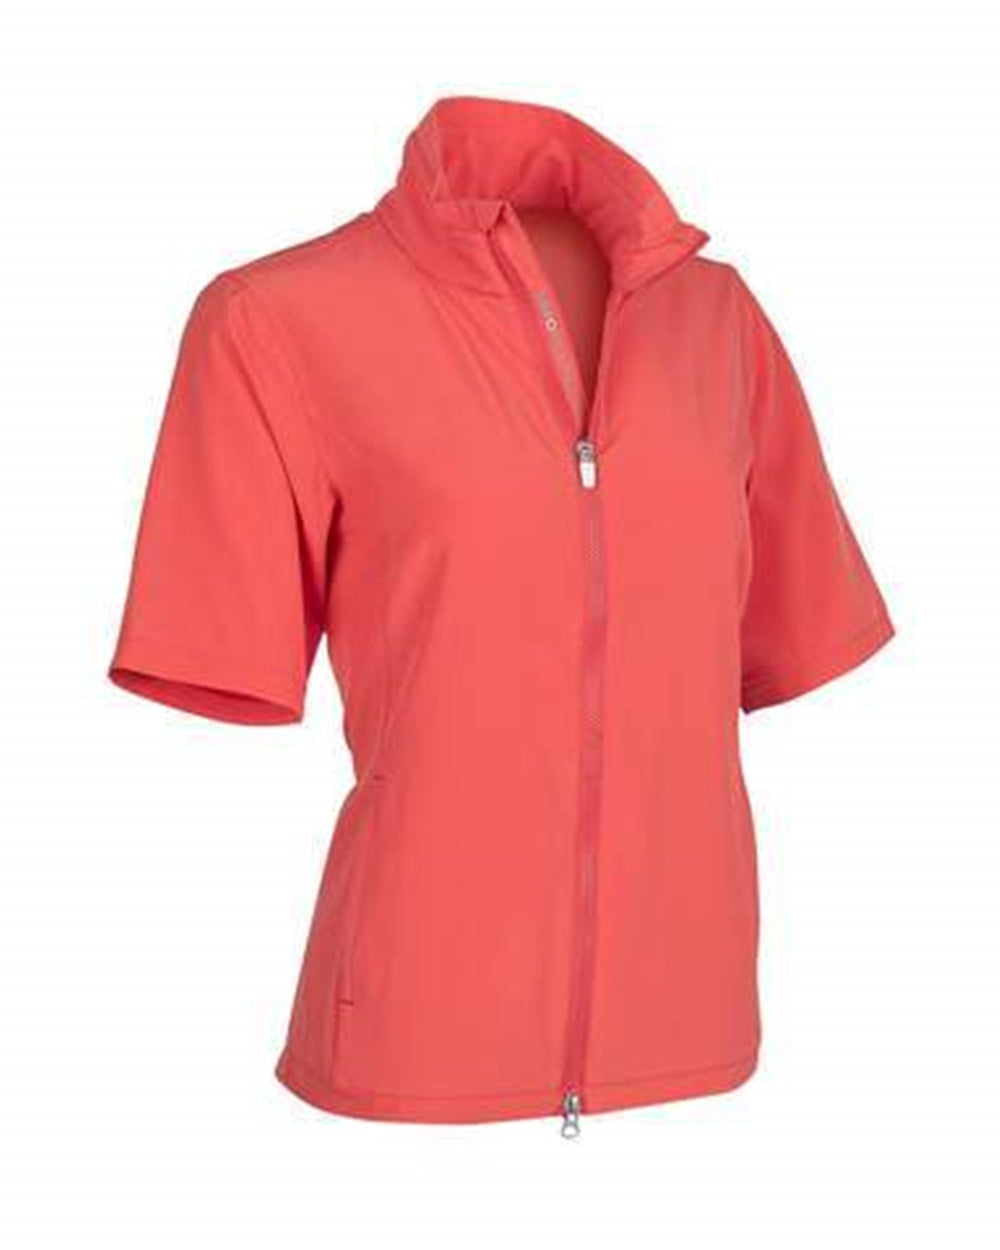 Zero Restriction EVE Short Sleeve Wind Jacket - Poppy